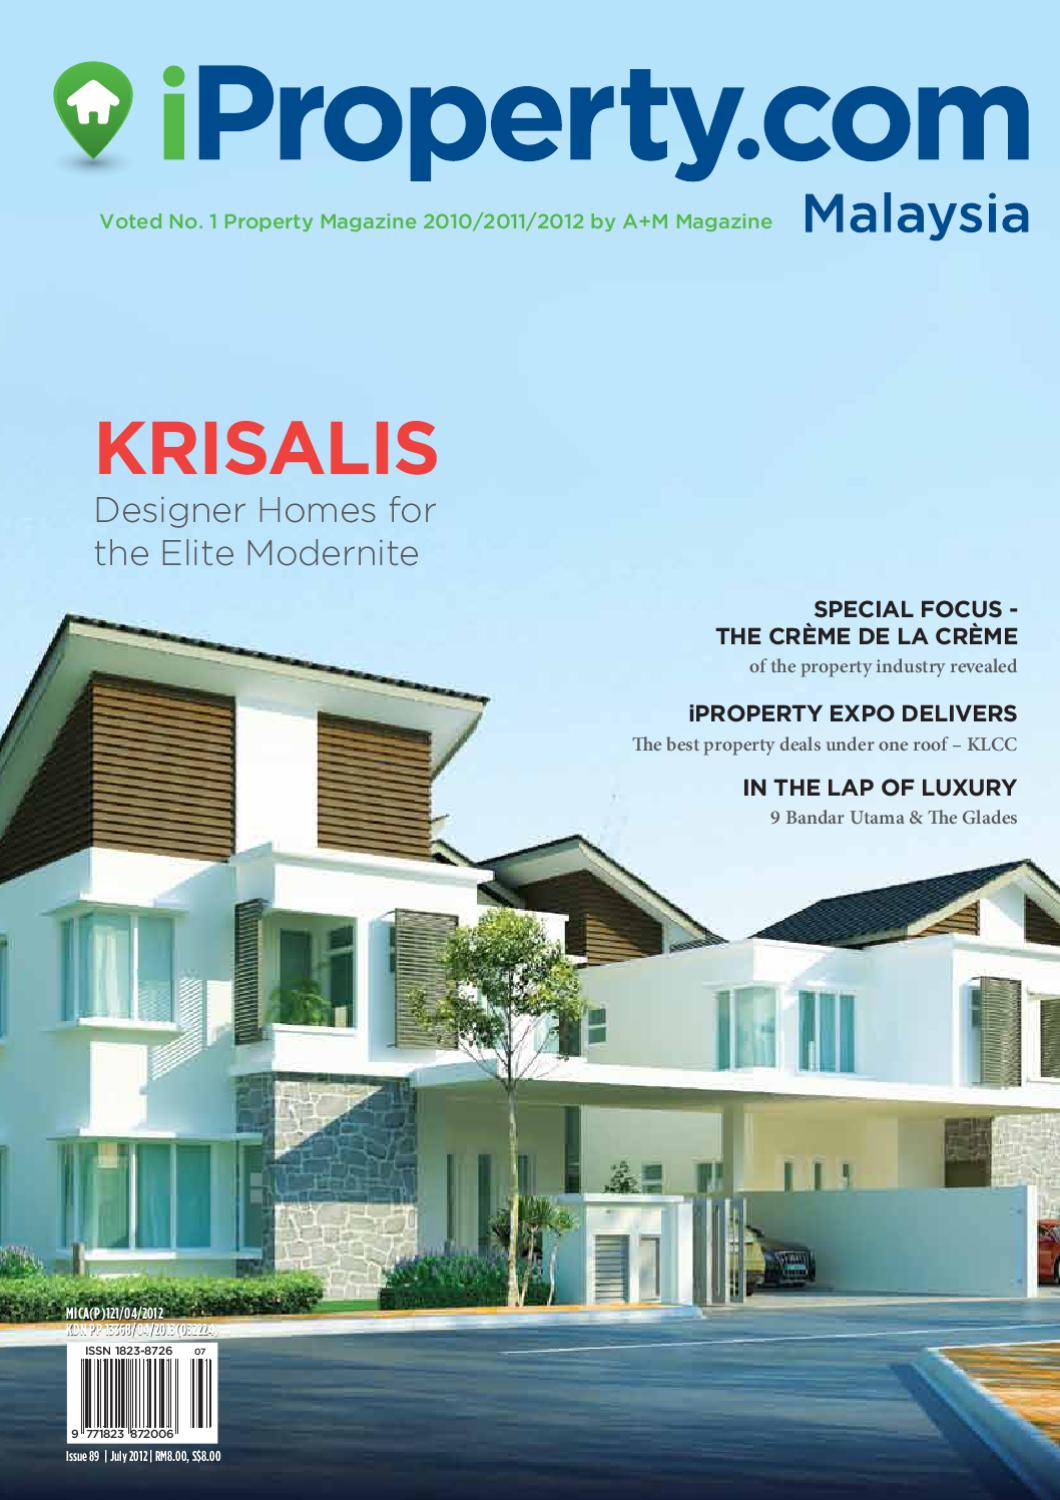 iproperty com issue 89 july by iproperty com issuu